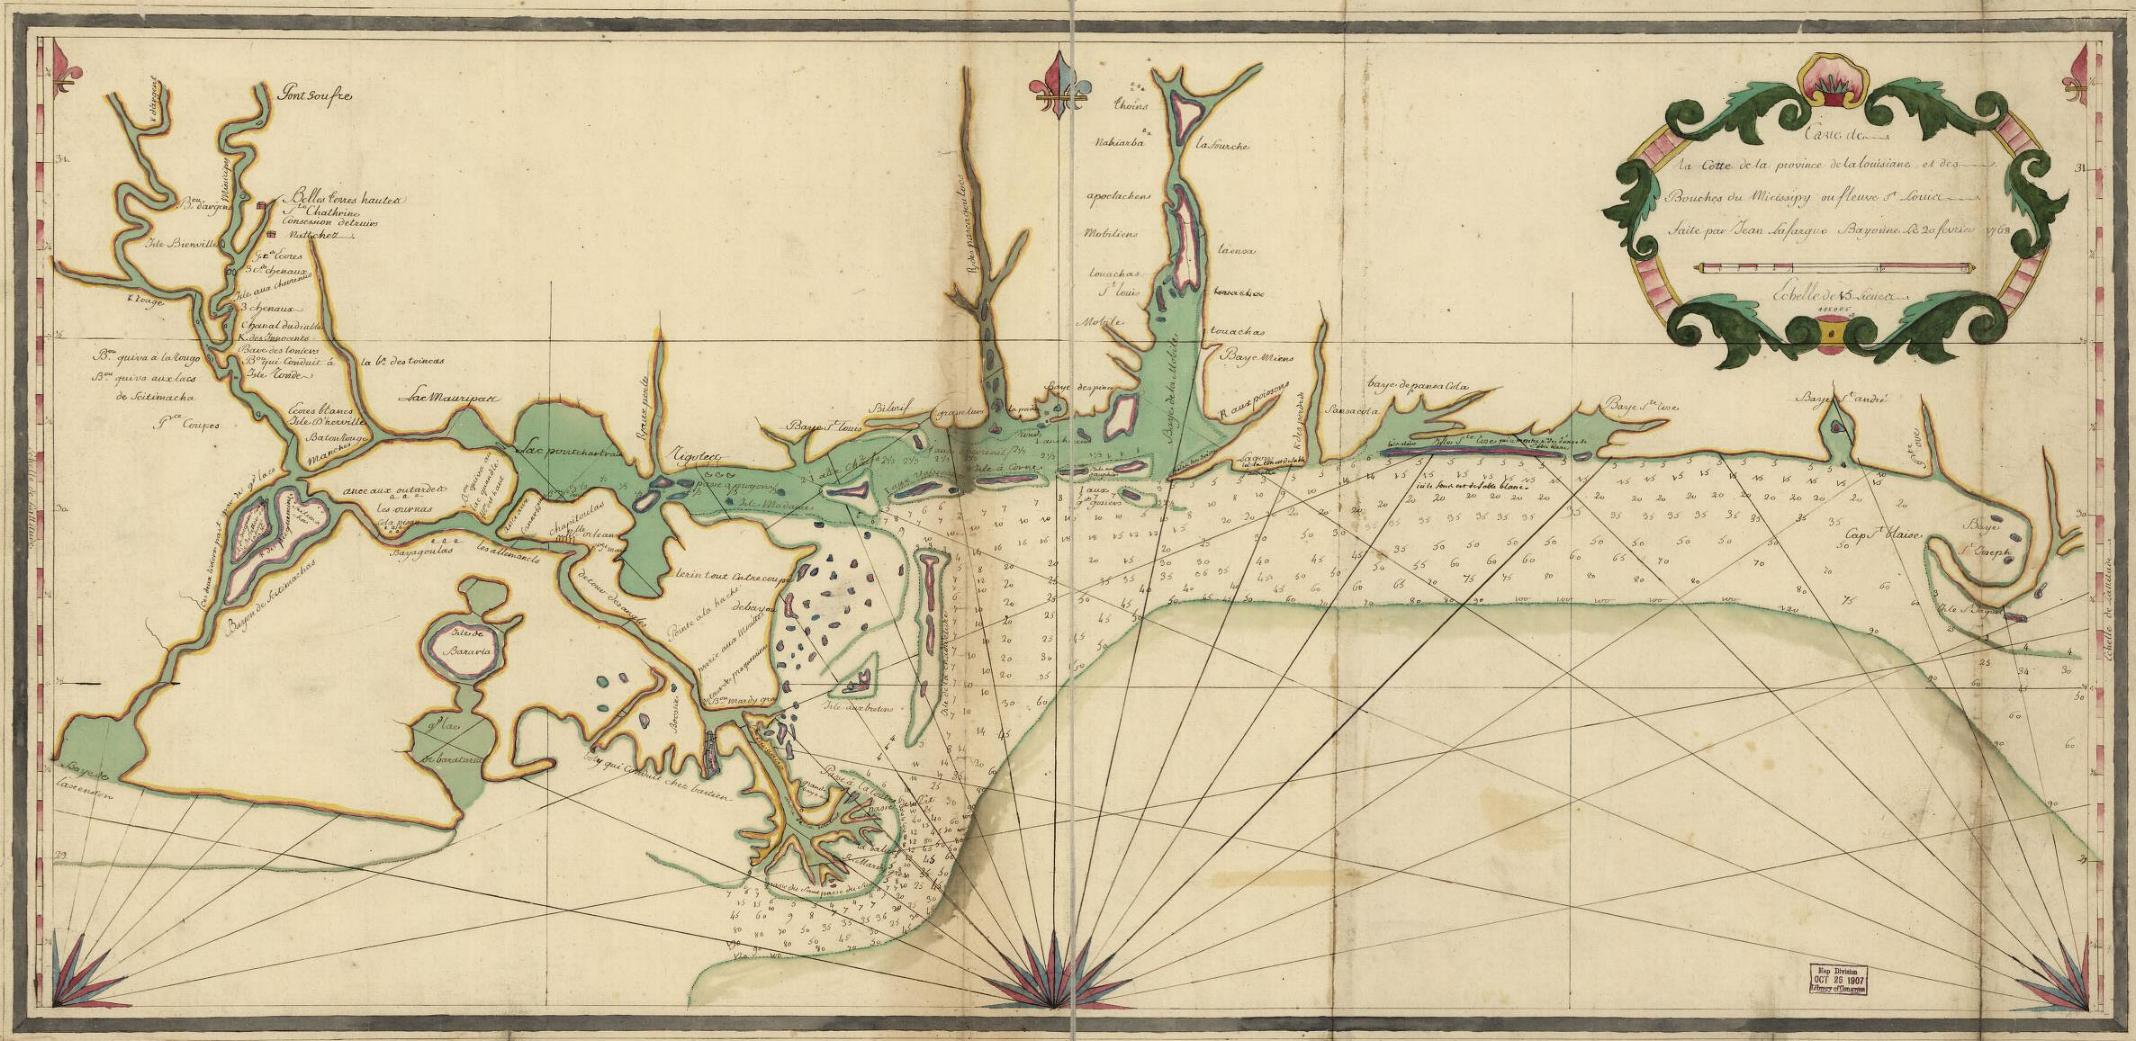 1768 map shows water route from the Lake to the River